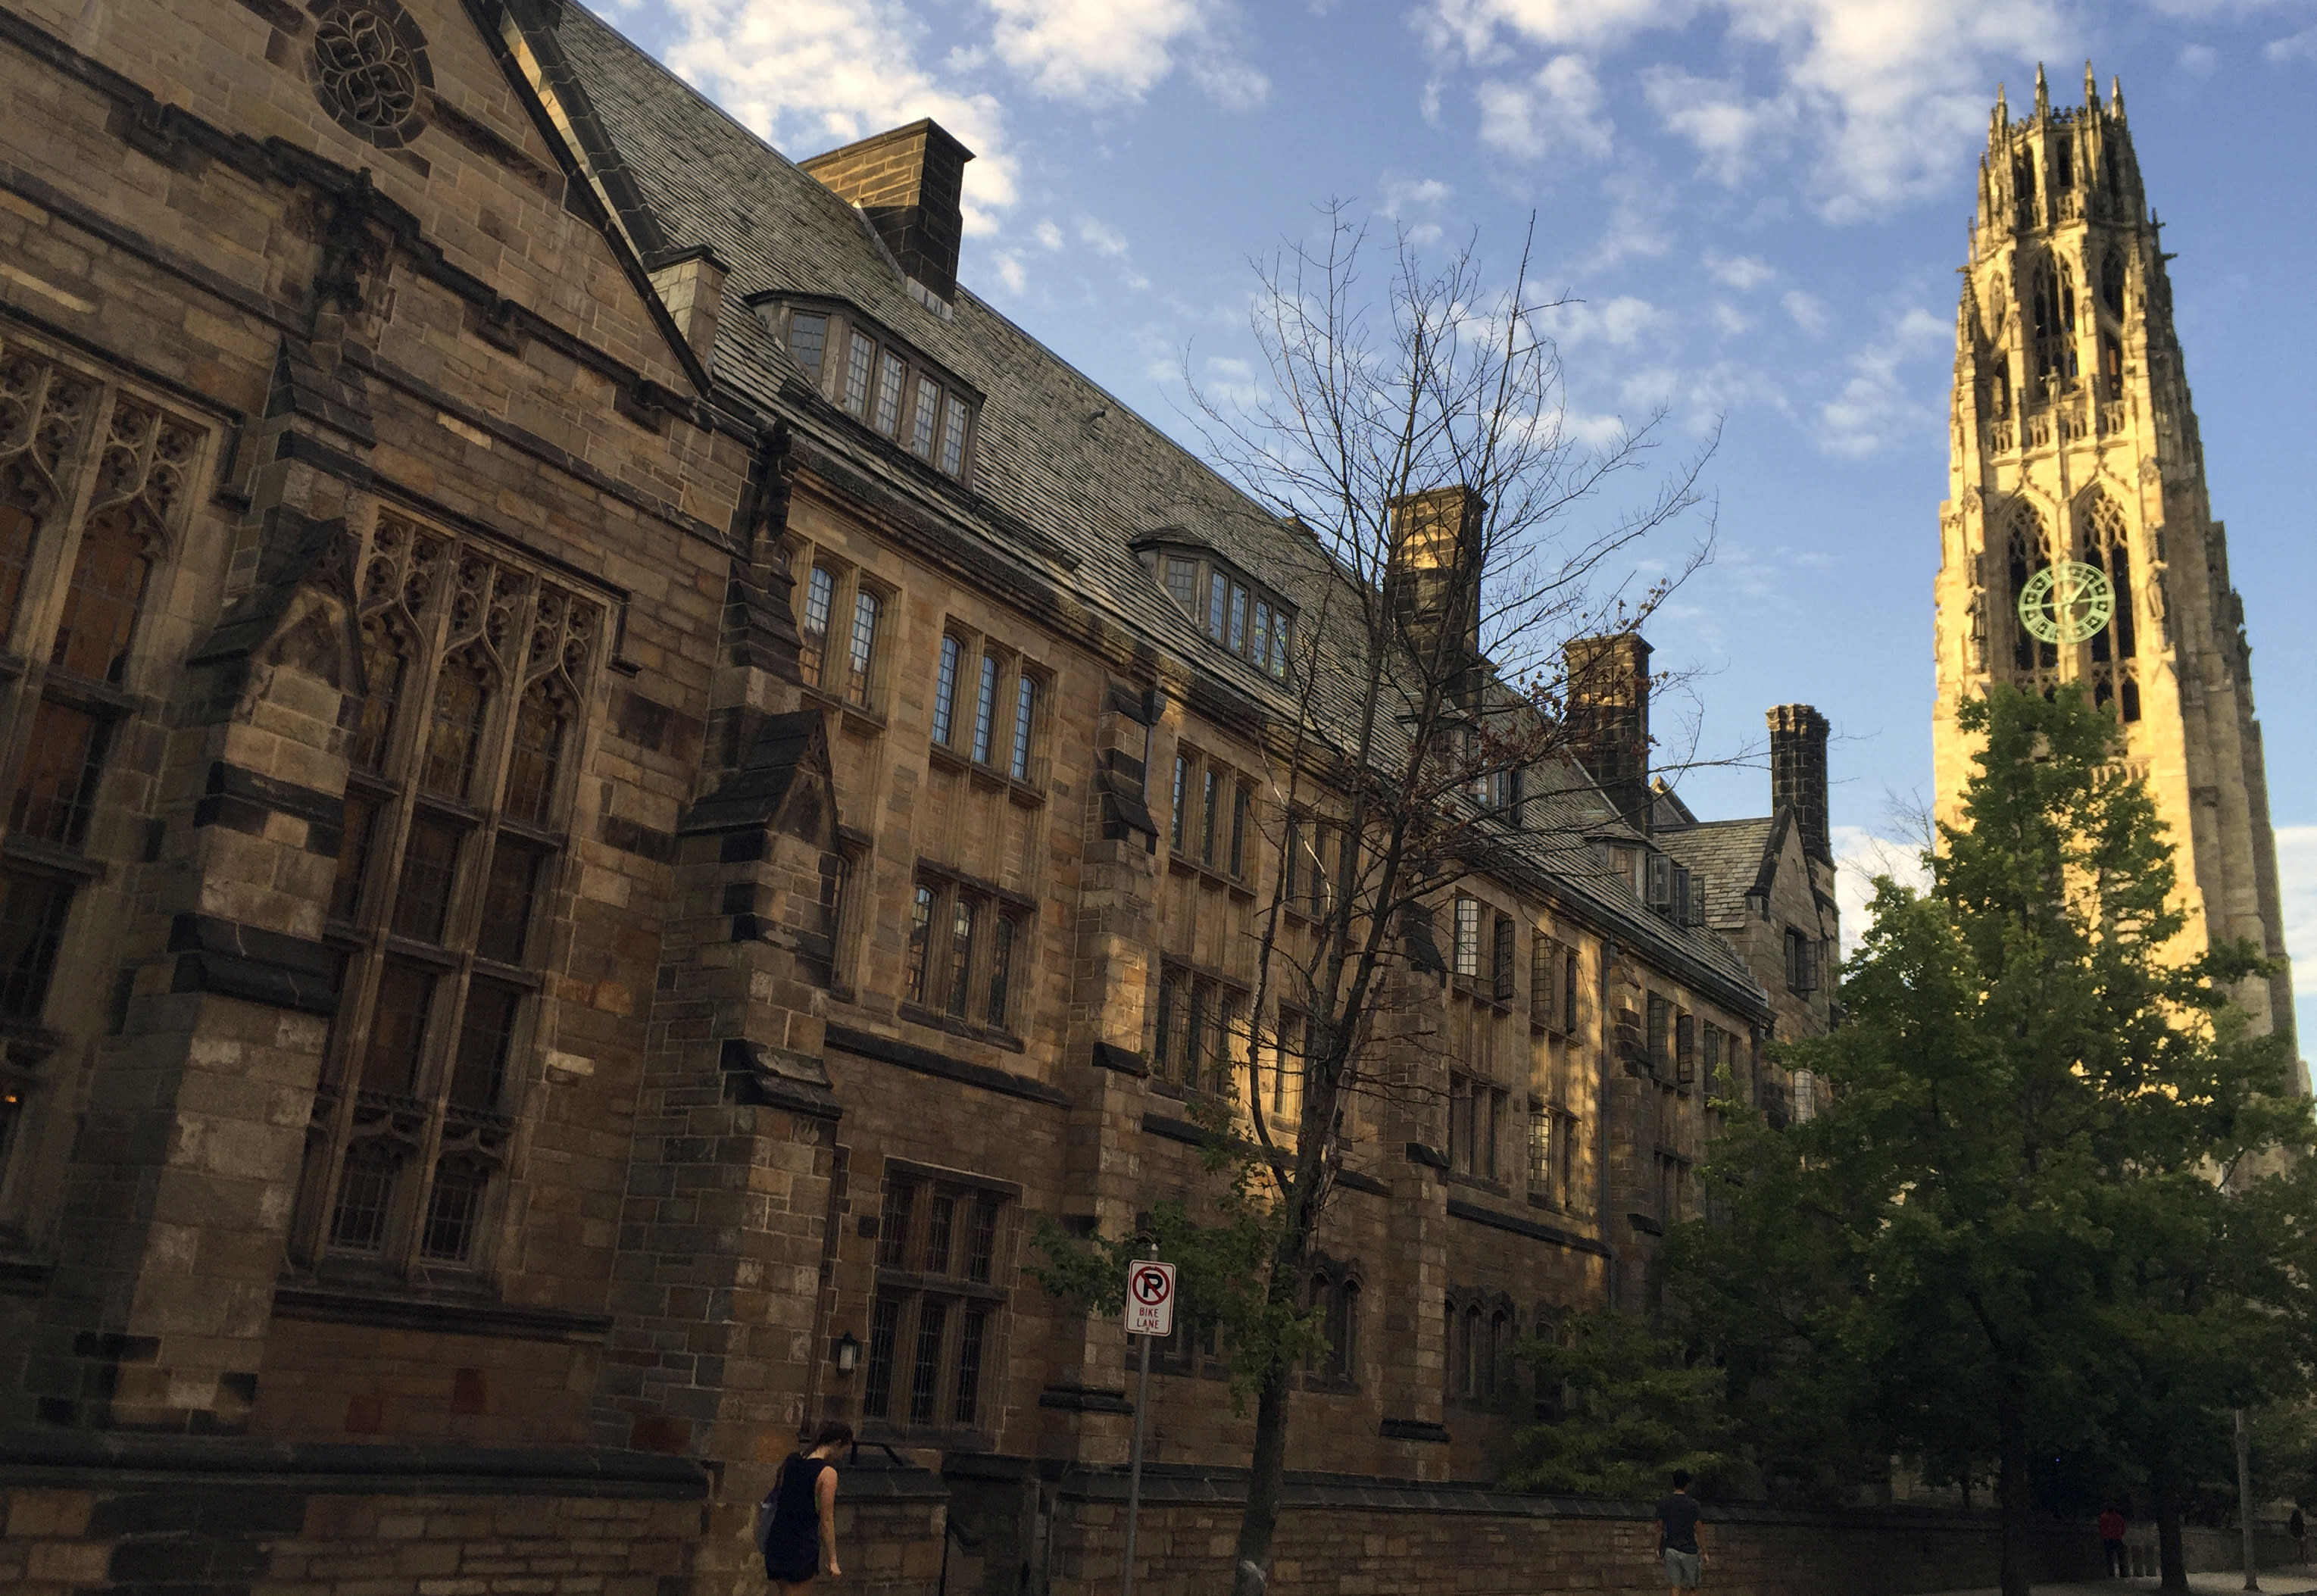 Justice Department Accuses Yale of Racial Discrimination